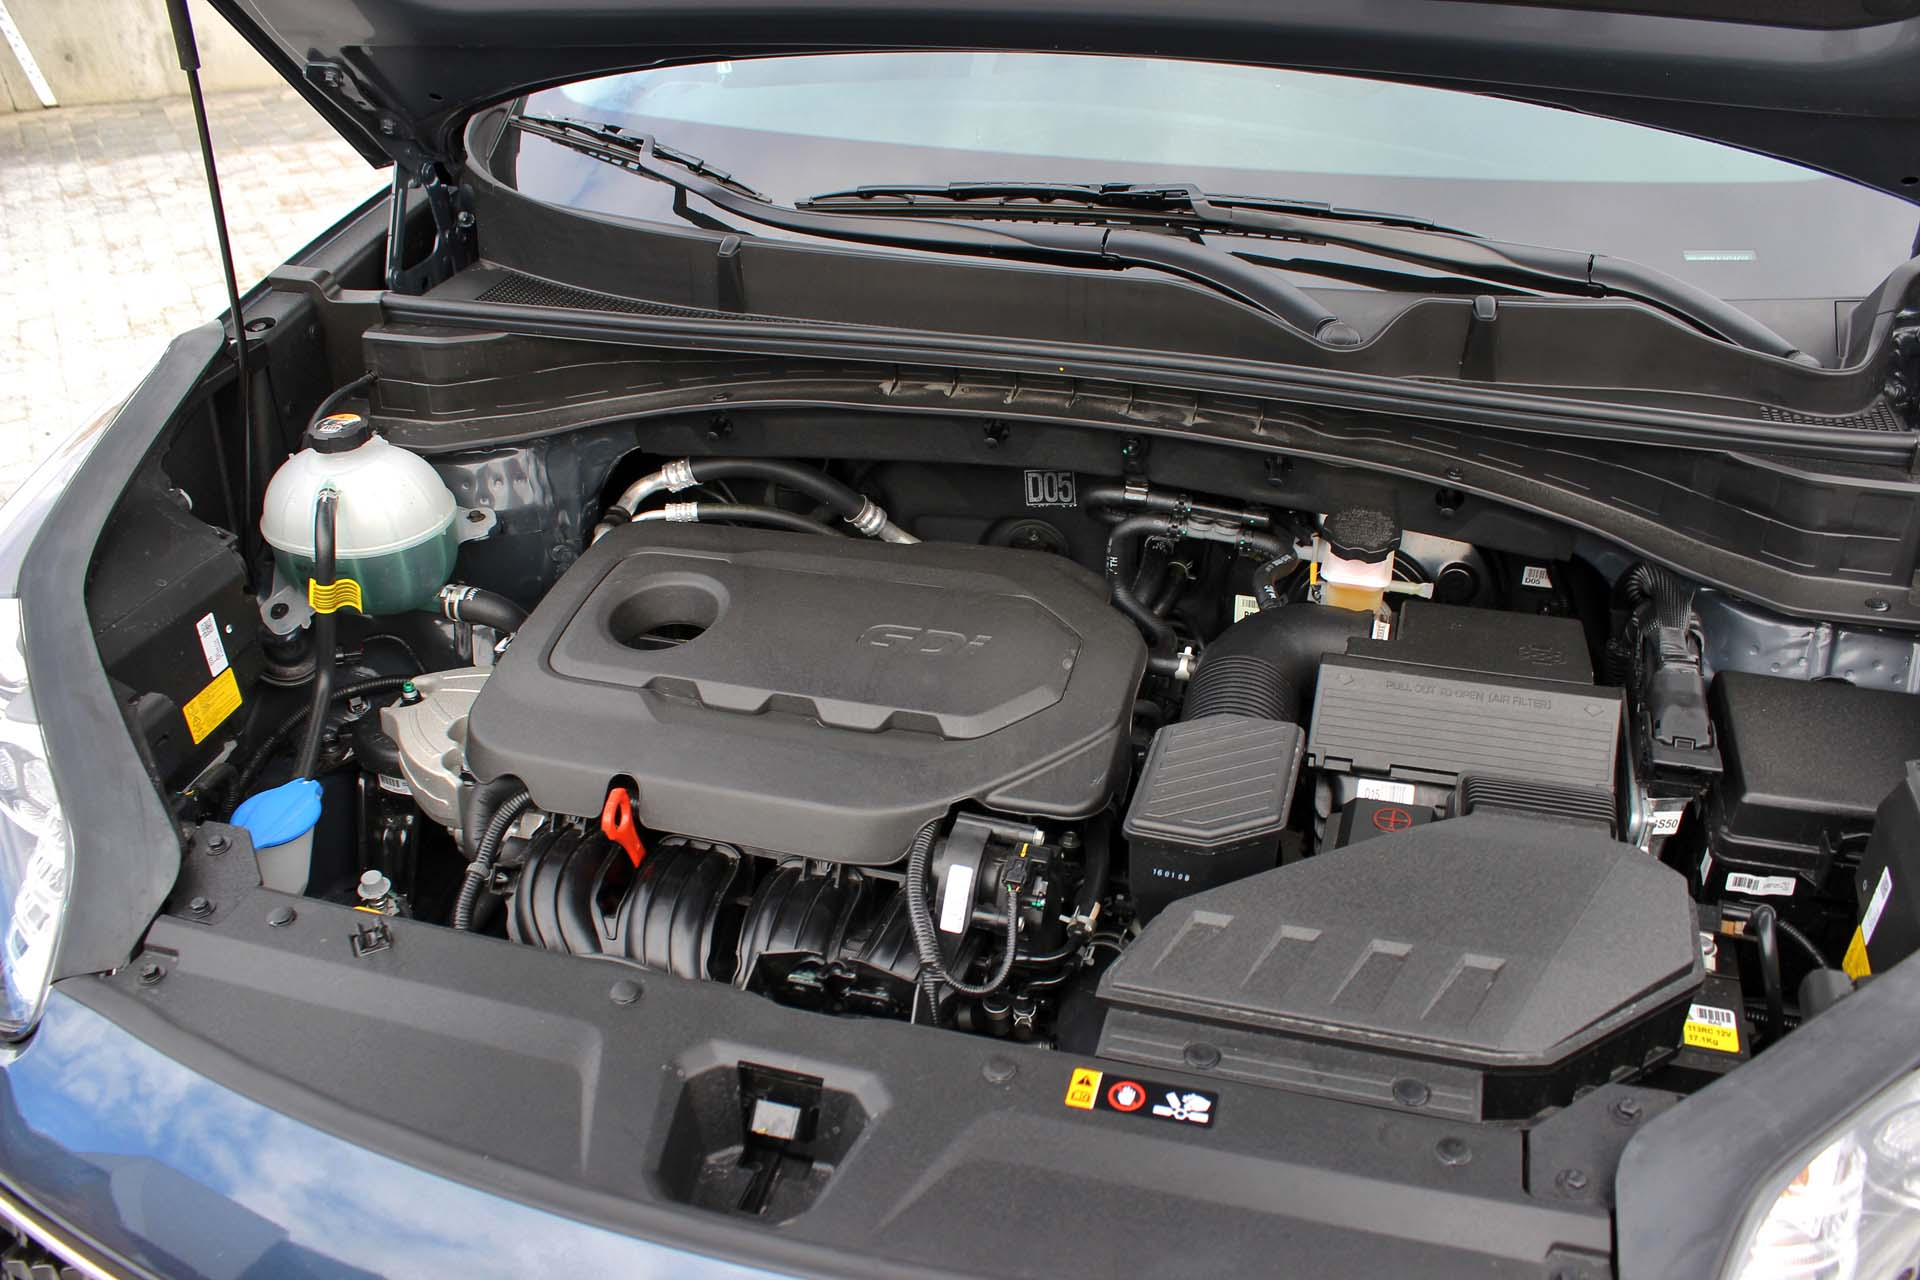 Dh Kia Sportage Ex on 2006 Chevrolet Equinox Engine